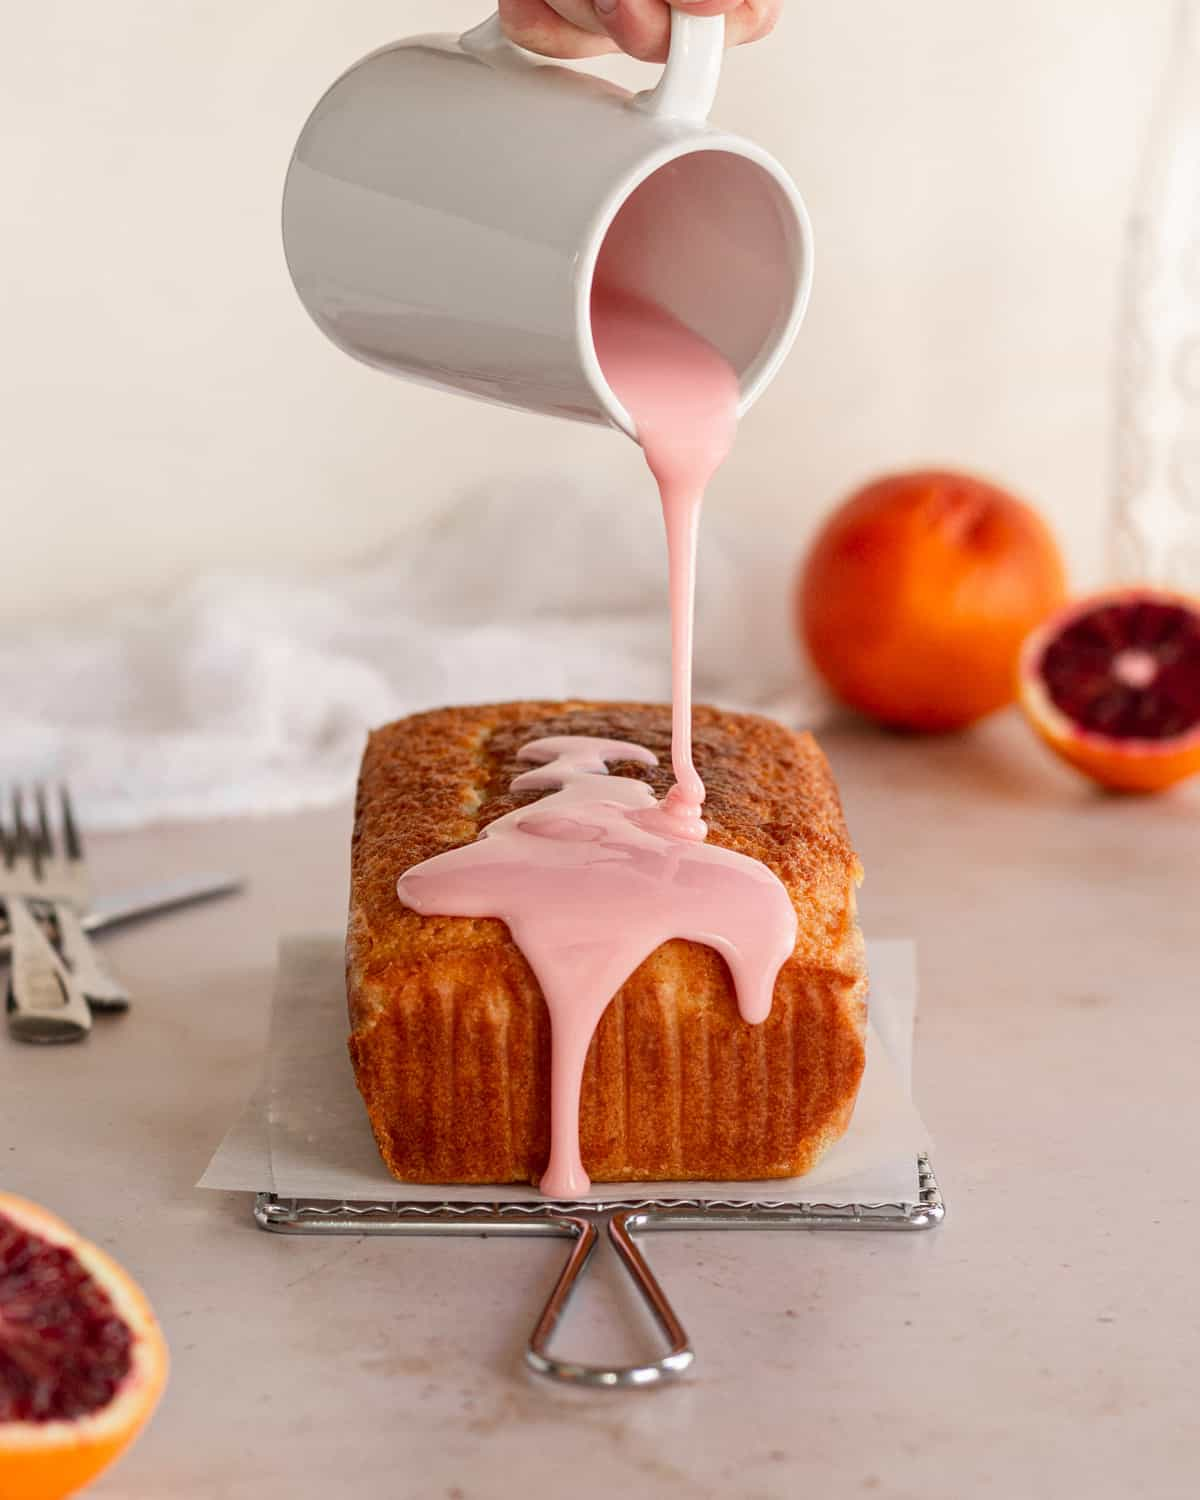 naked loaf cake with drizzle of pink blood orange icing being poured on top.